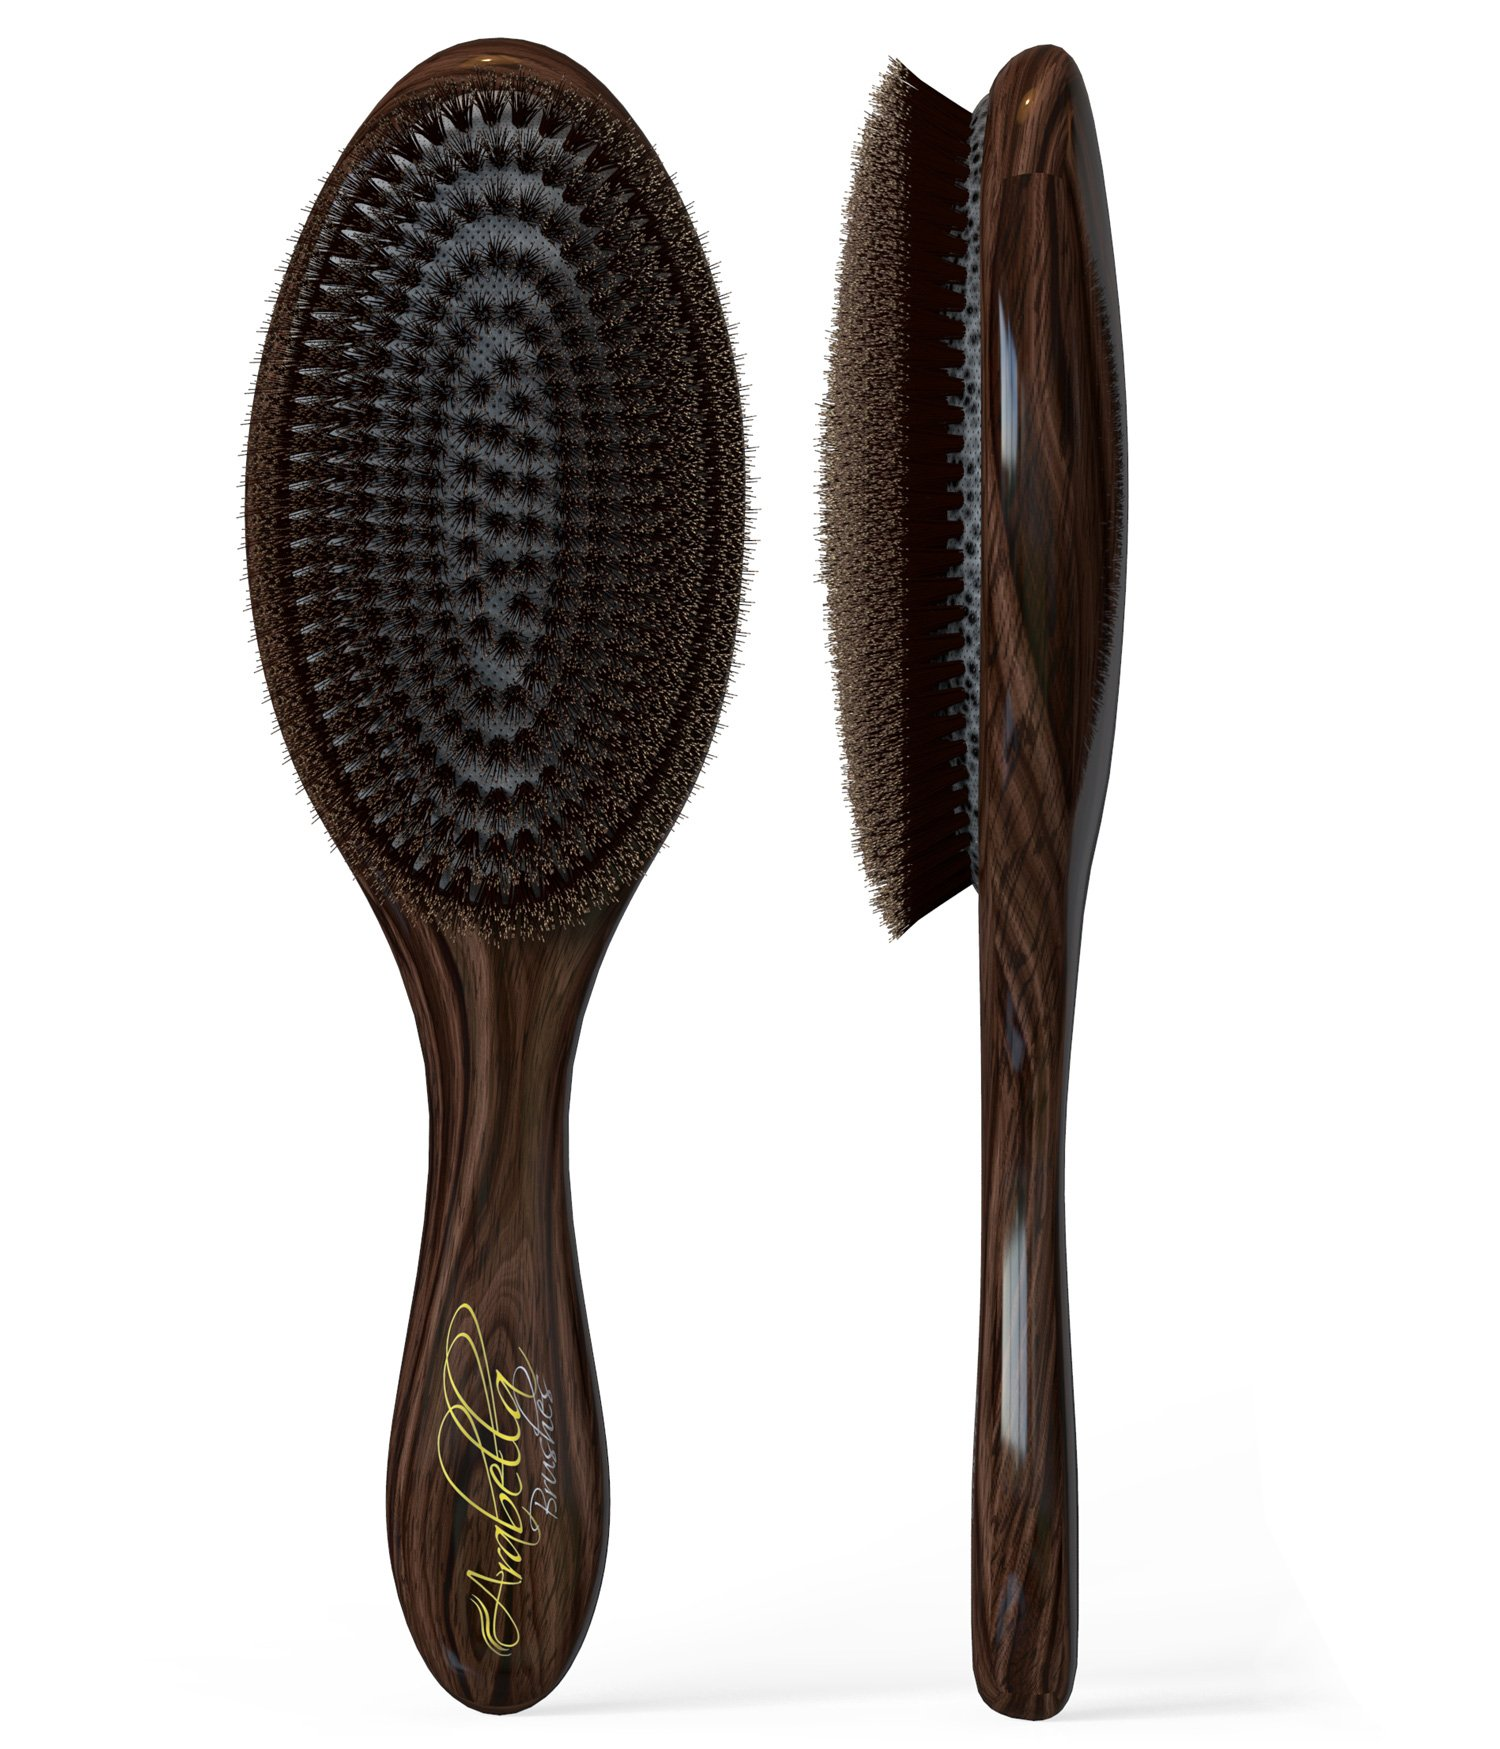 100% Natural Boar Bristle Hair Brush Best Used for Short or Long Hair, Beards- Soft Bristles-professional Salon Quality- For Men and Women- Light Weight. Buy Now